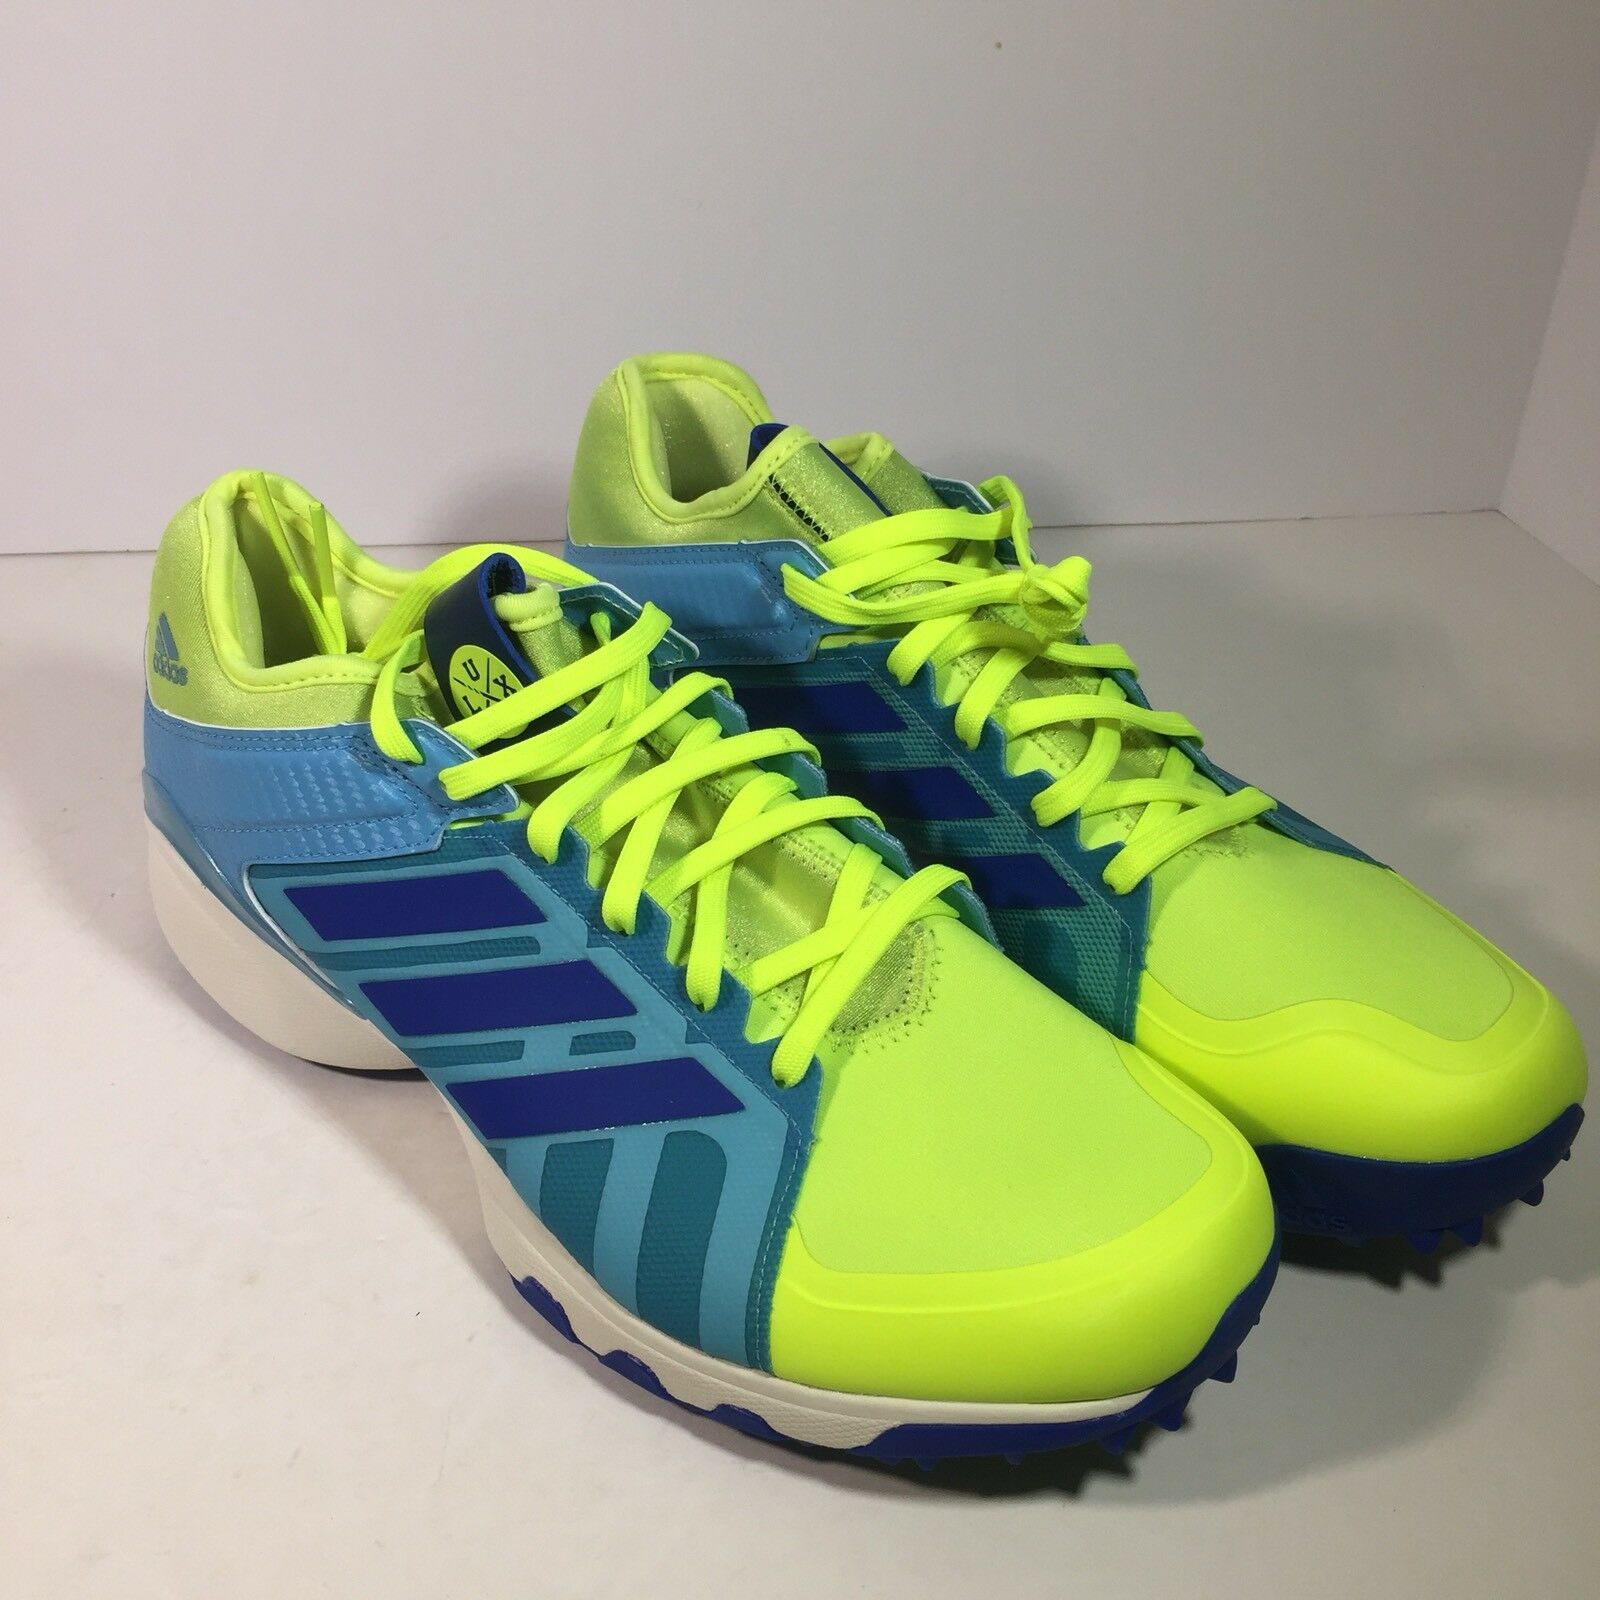 Adidas Performance Men's Lux Field Hockey shoes - Size 9 AQ6510